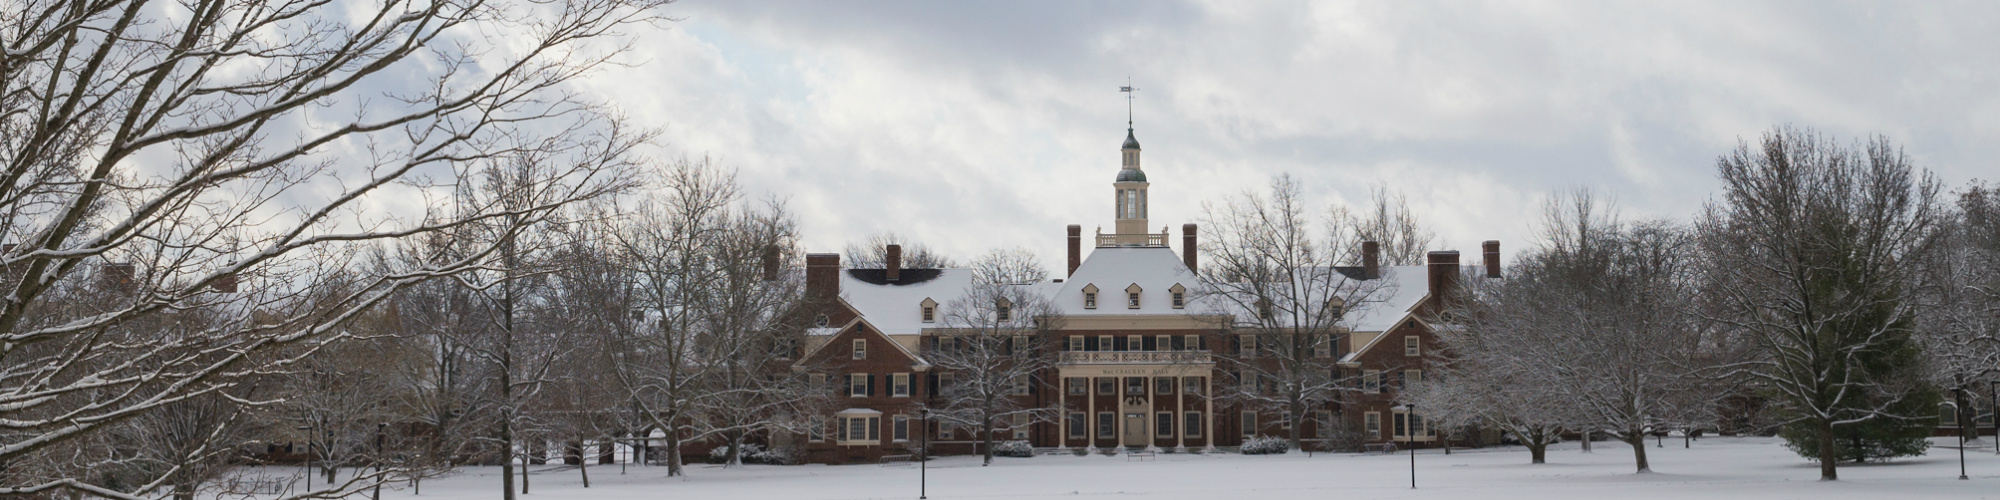 MacKracken Hall in winter